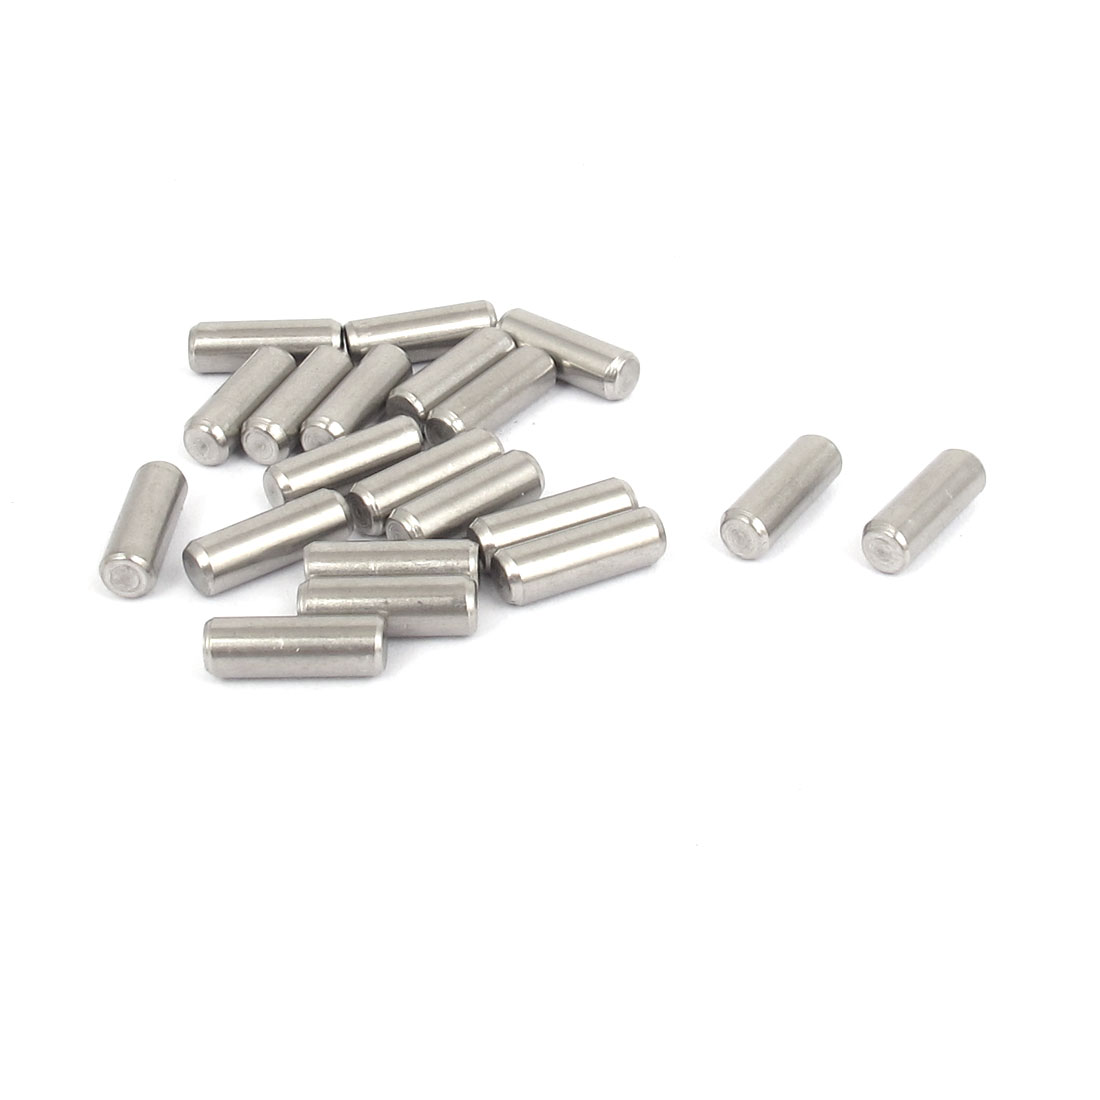 4mmx12mm 304 Stainless Steel Parallel Dowel Pins Fastener Elements 20pcs